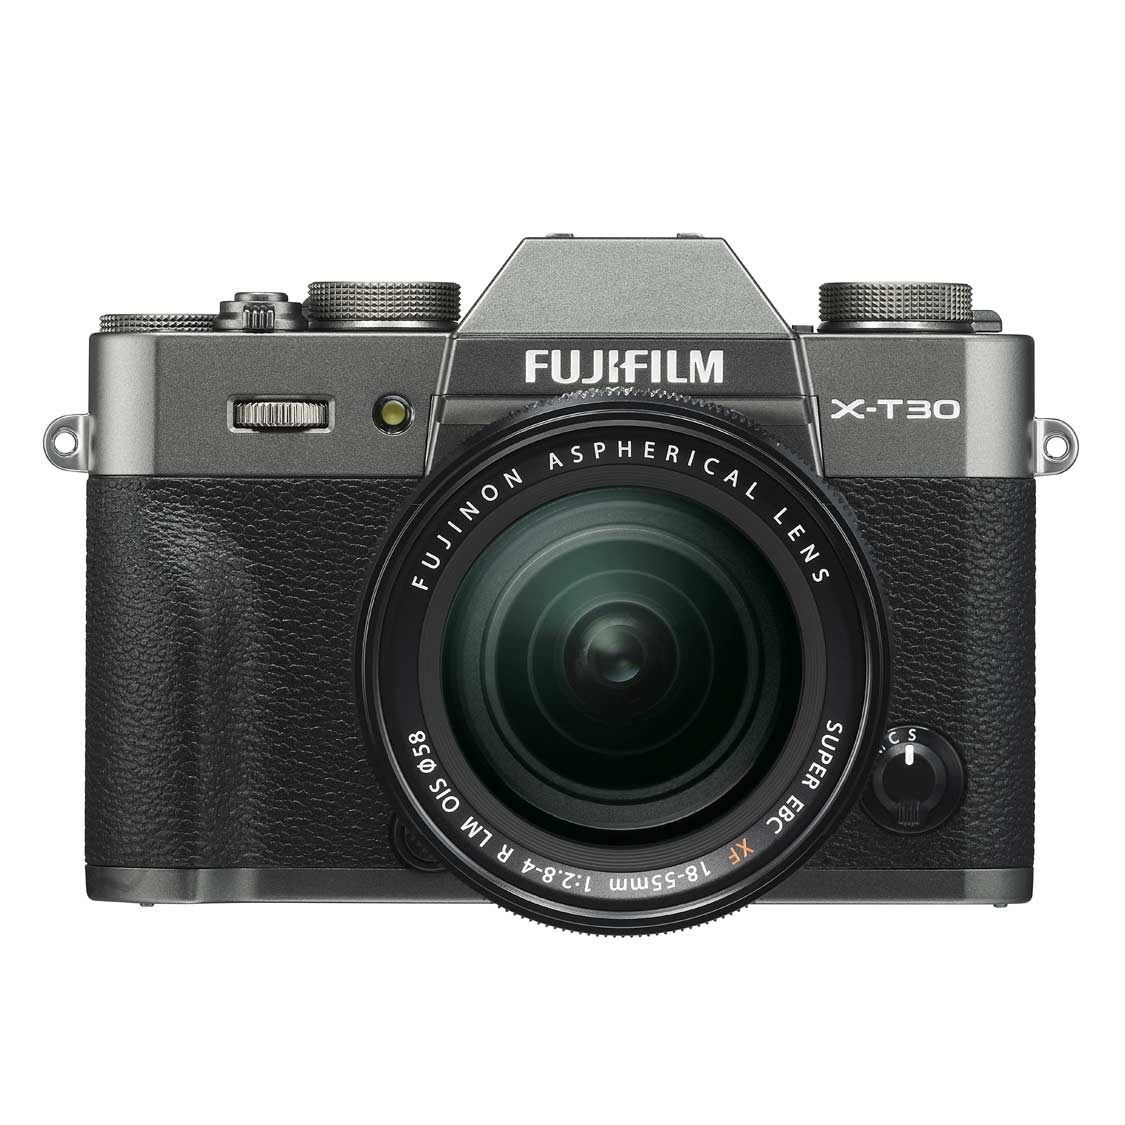 Fujifilm X-T30 Camera (charcoal) with 18-55mm f2.8-4 Lens